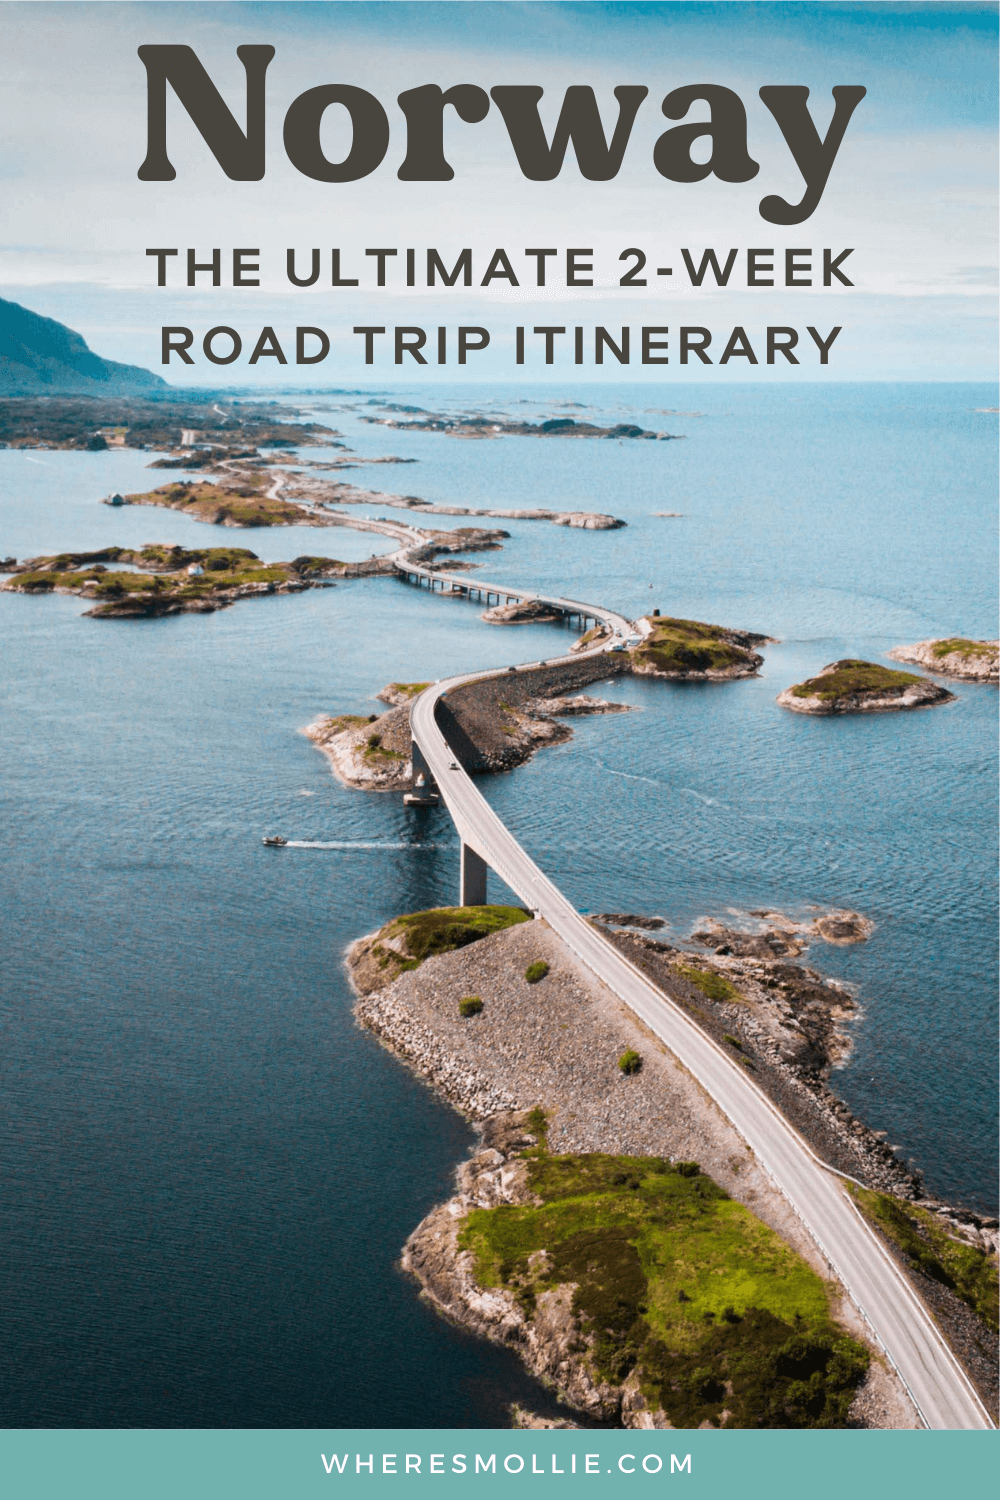 A 2-week Norway road trip itinerary